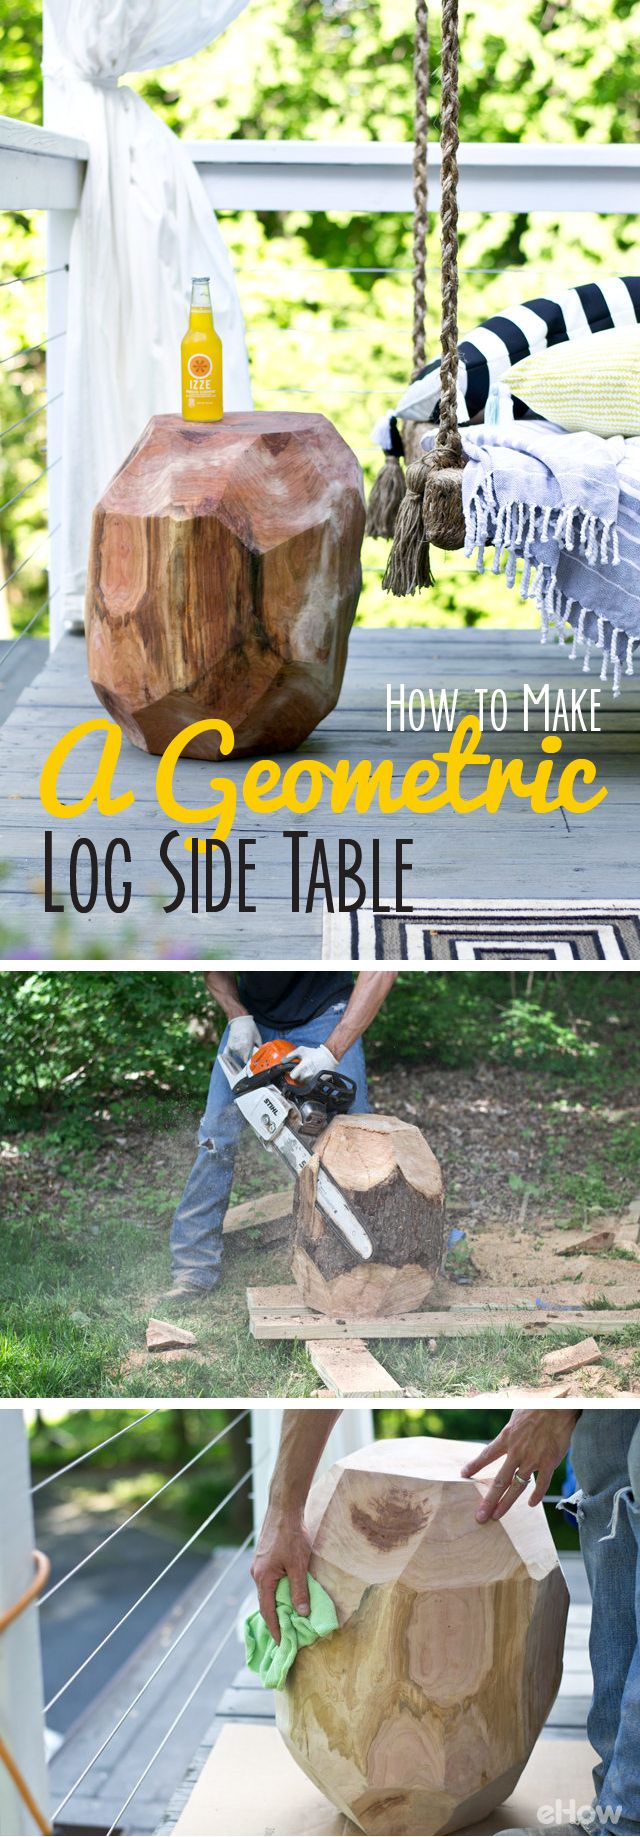 This geometric log side table is so beautiful and perfect for that rustic look on your patio or in your home! It's so much fun to make because you're using a free-form pattern, meaning it doesn't require precision or symmetry! DIY instructions here: http://www.ehow.com/how_12340608_make-geometric-log-side-table-patio.html?utm_source=pinterest.com&utm_medium=referral&utm_content=freestyle&utm_campaign=fanpage